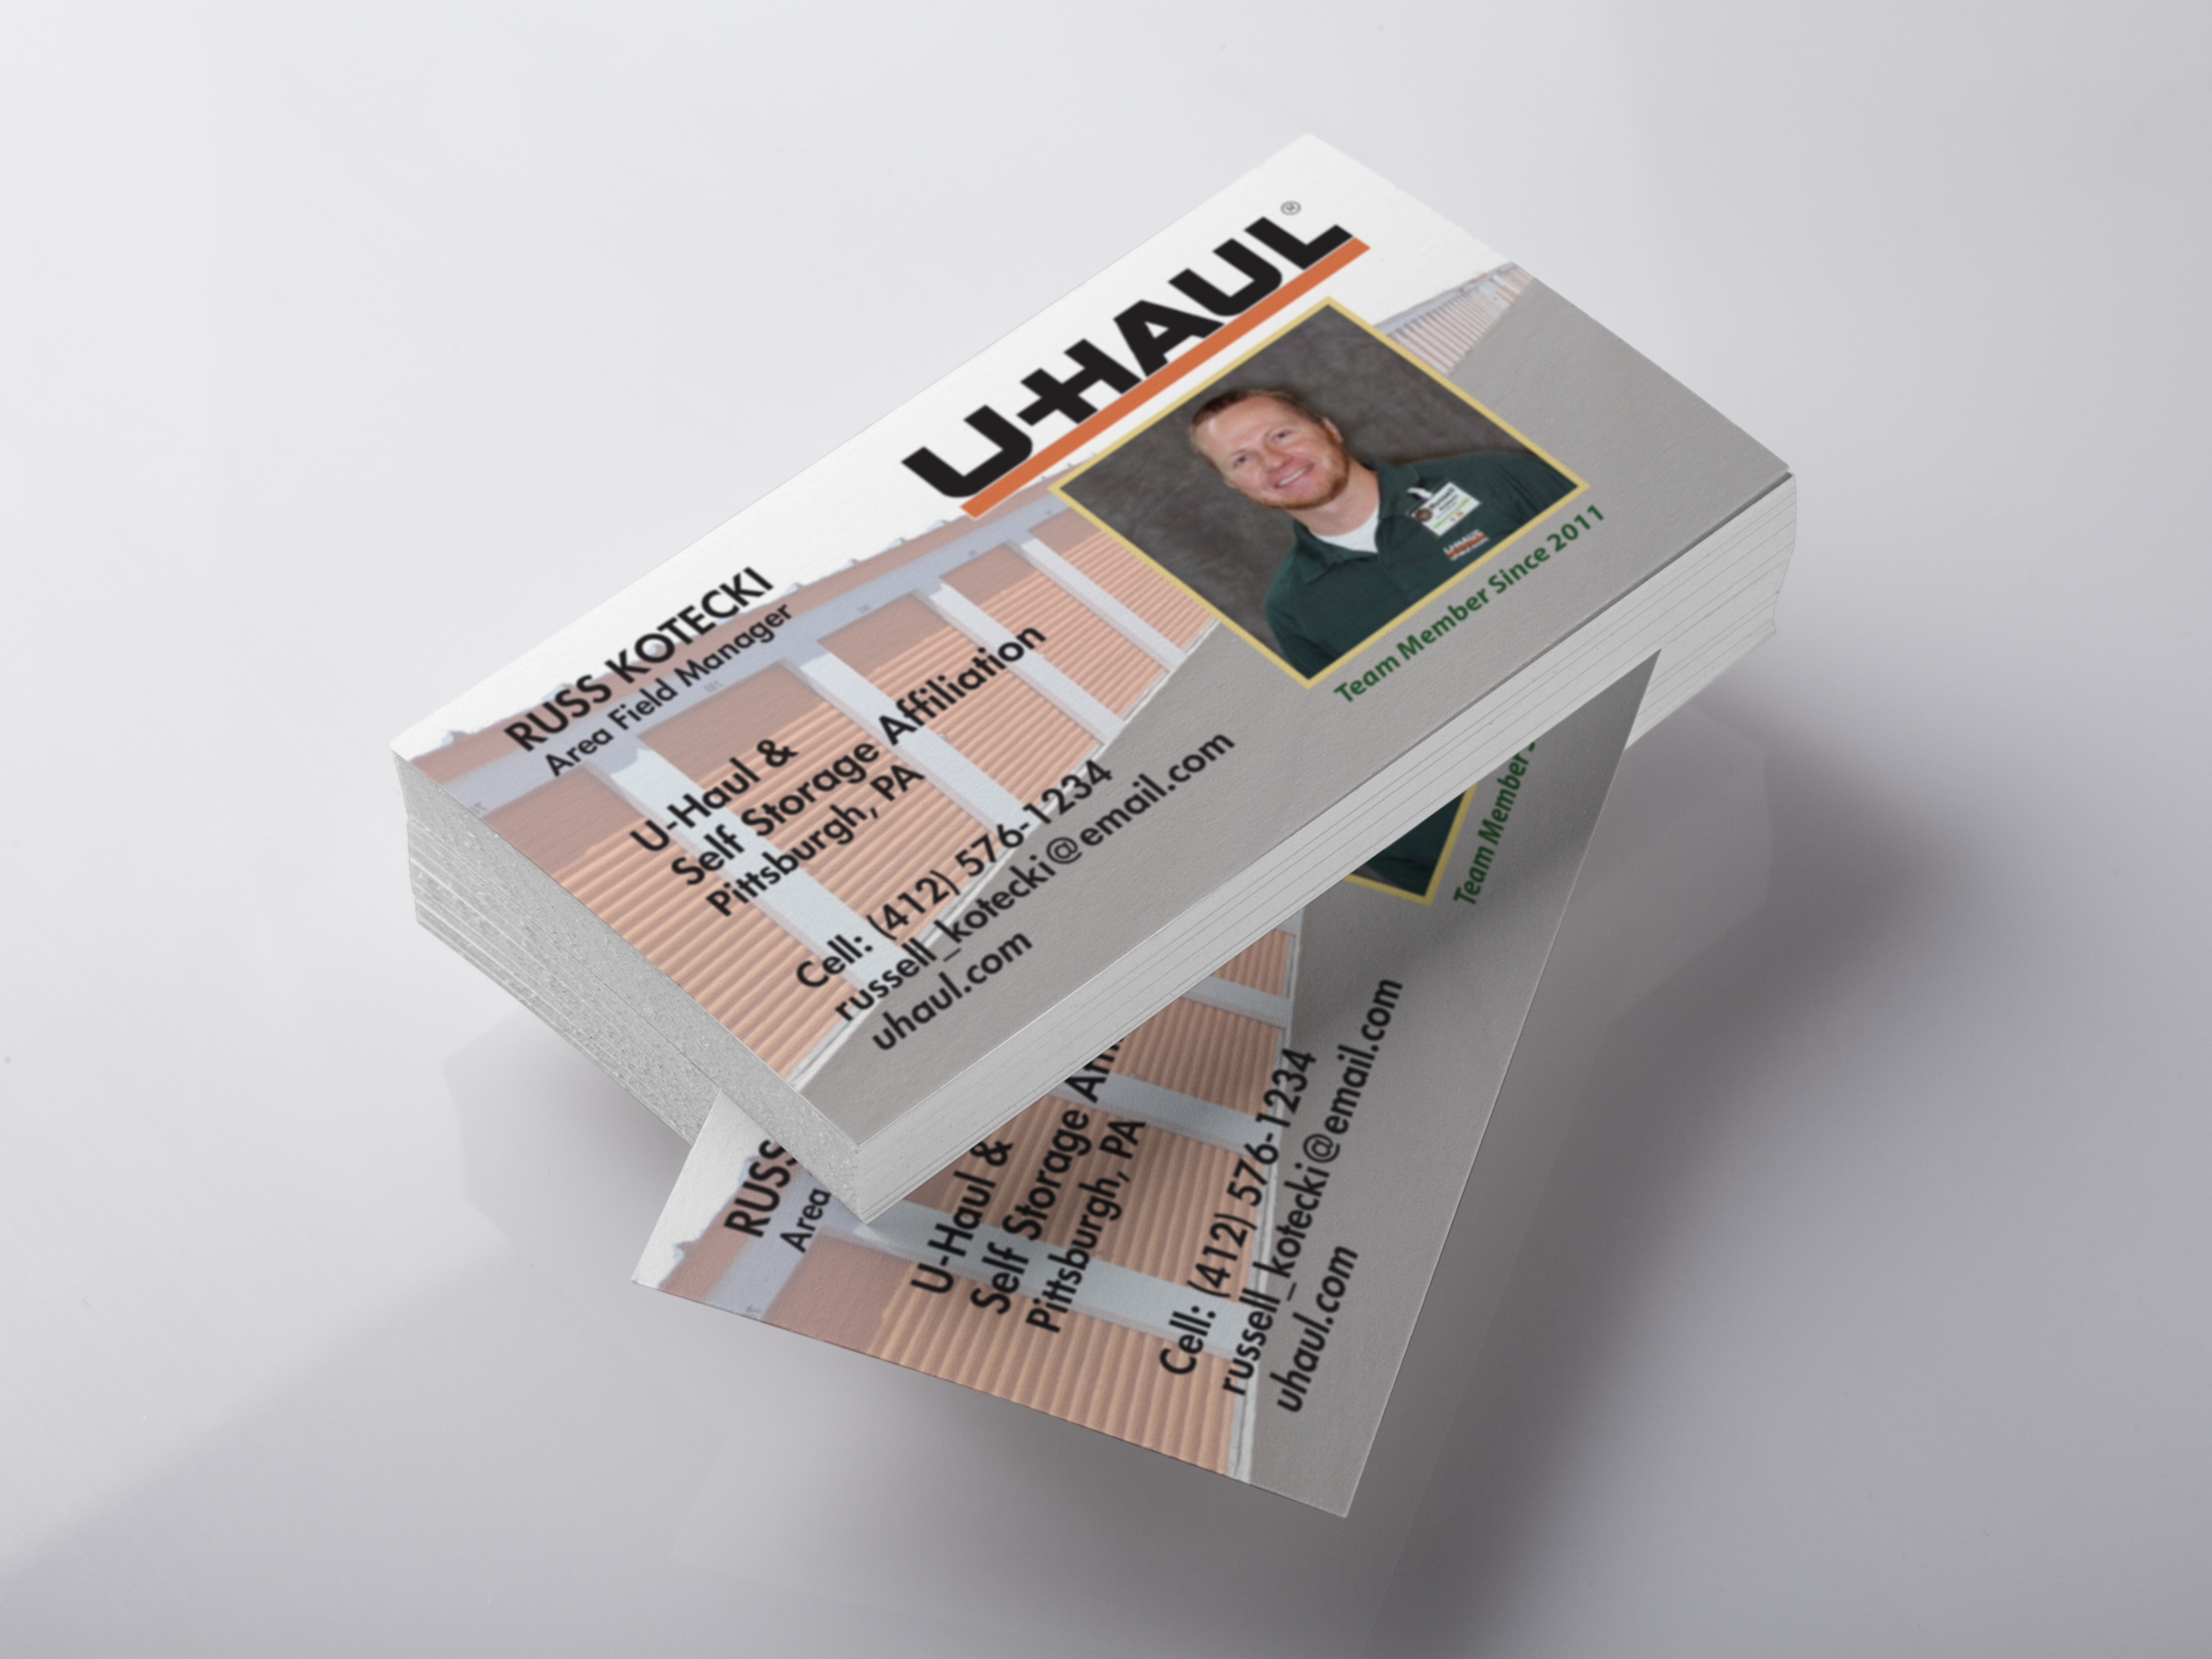 UHAULBusiness Card - This was a business card designed for a local Area Field Manager for UHaul. He provided the pictures of some storage units and we worked together to create a design he was happy with. It was made using Adobe Illustrator CC.